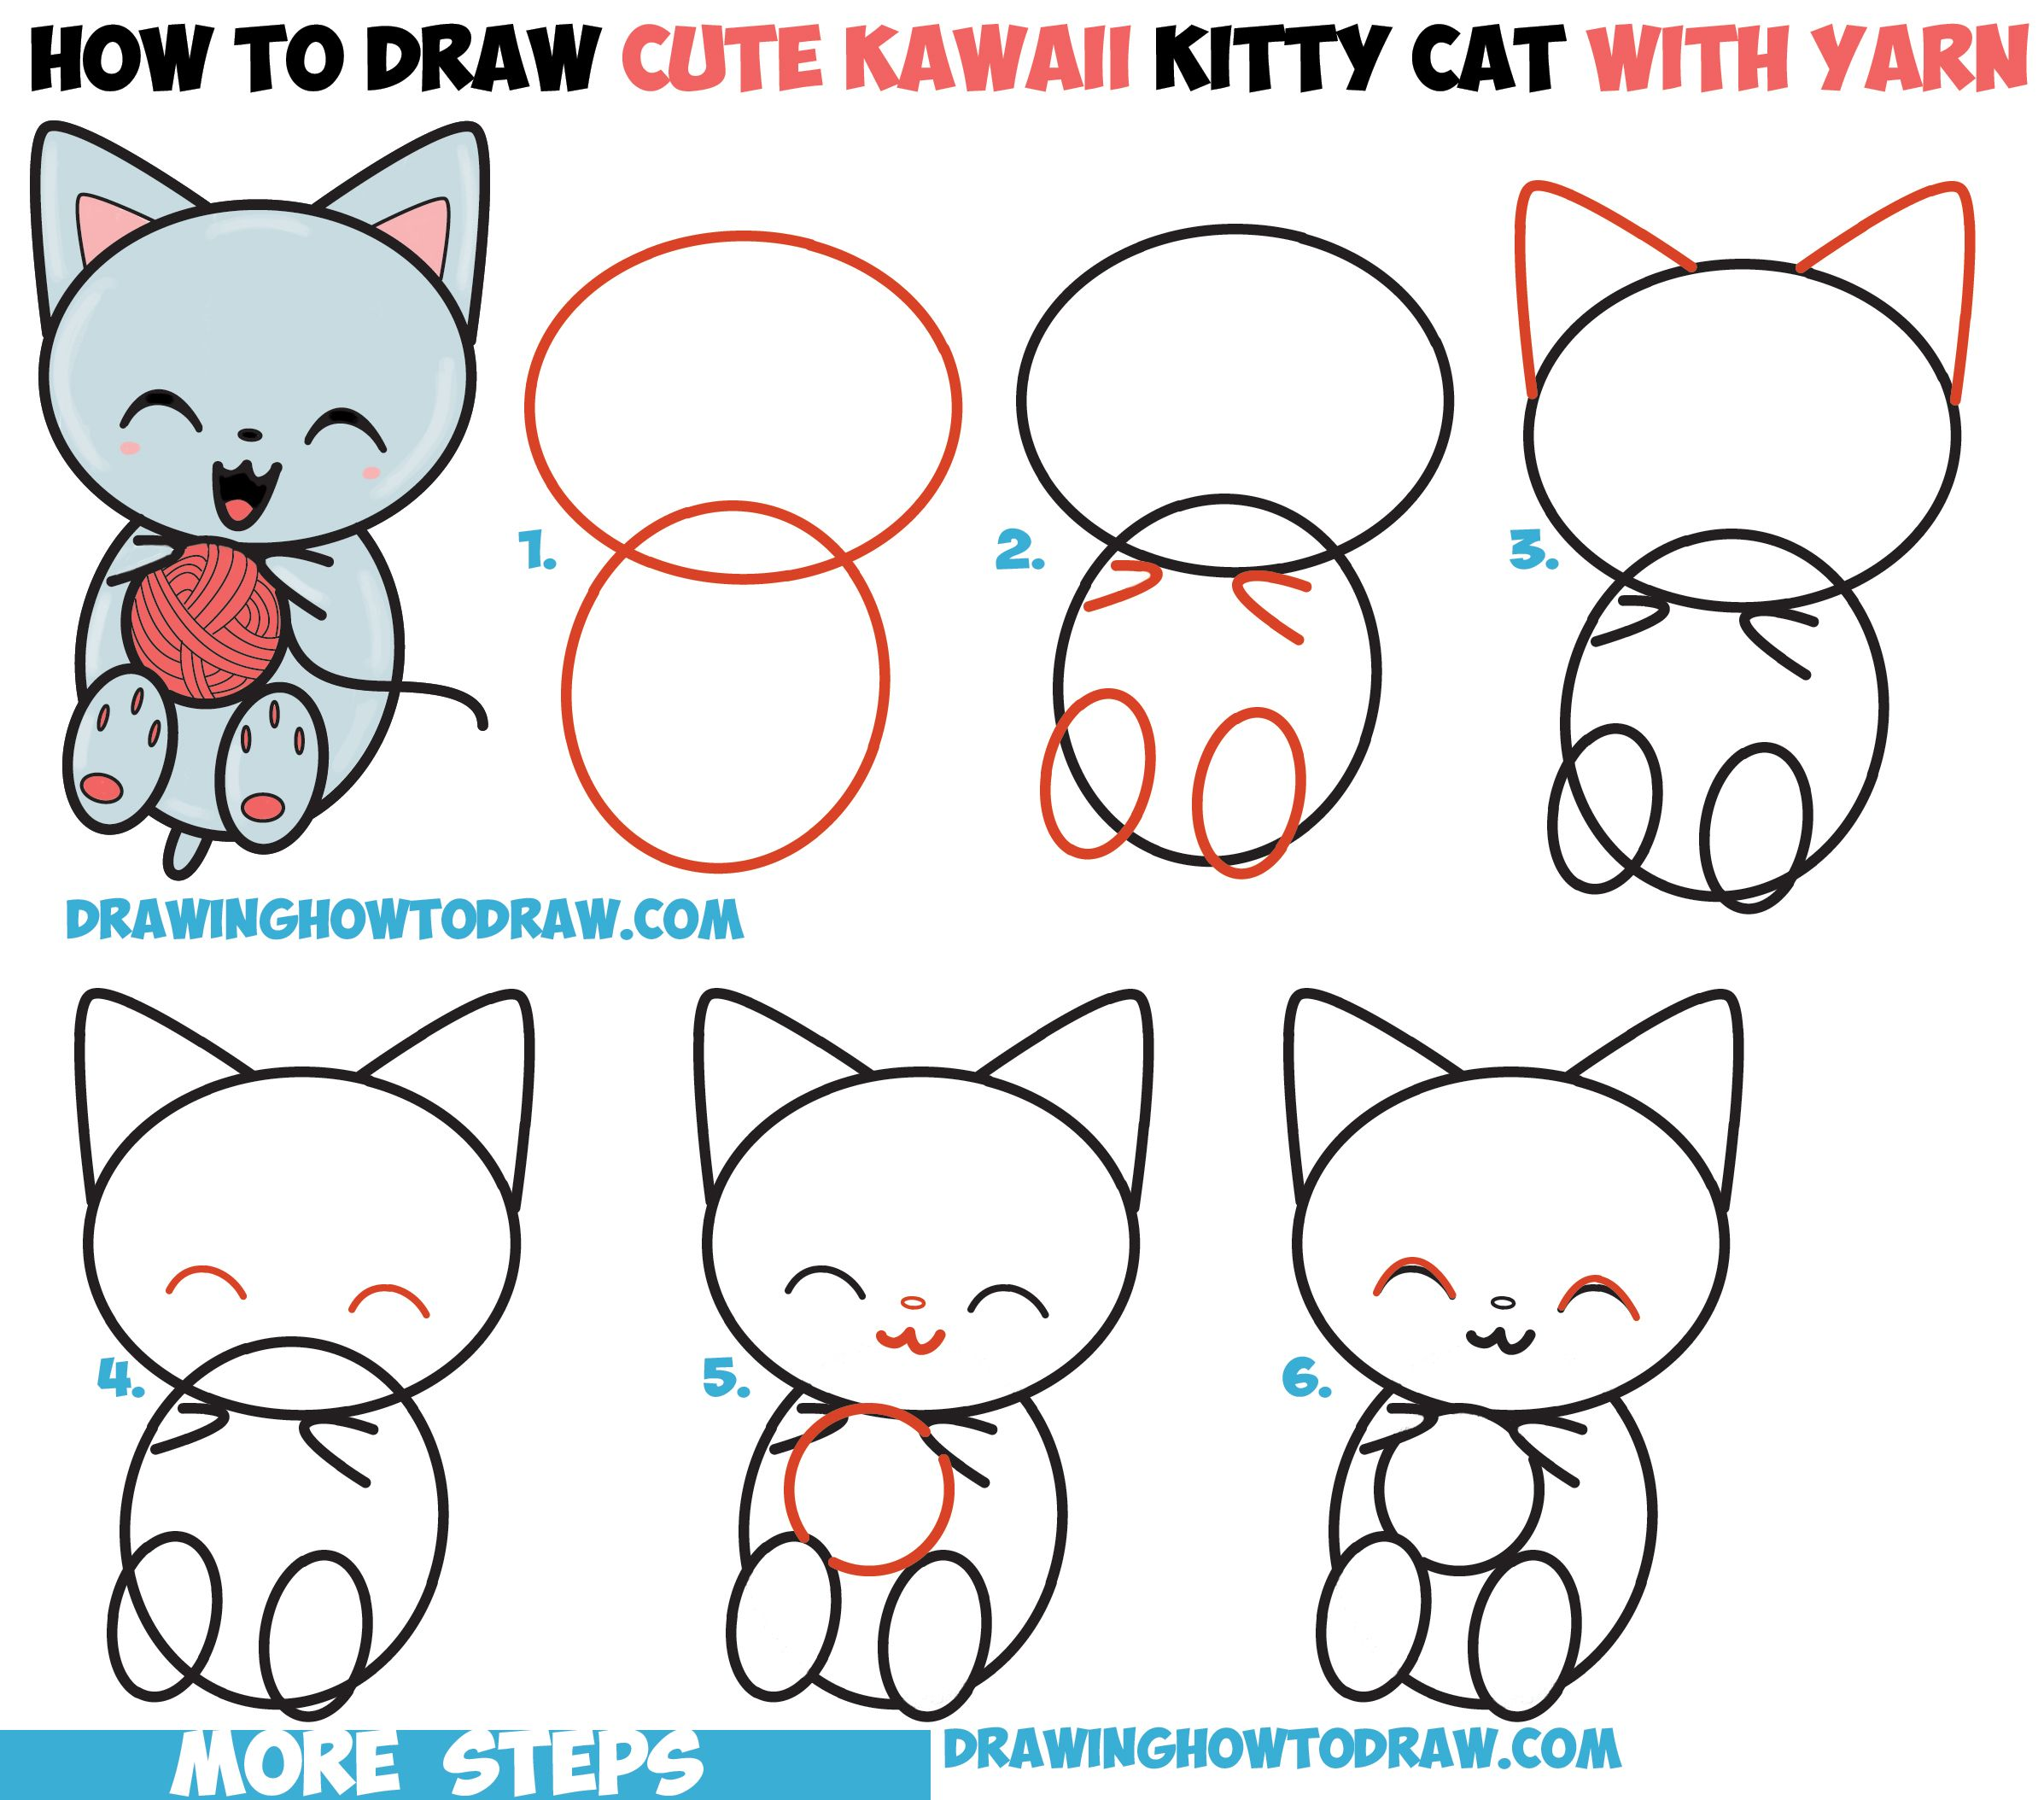 How to Draw Cute Kawaii Kitten / Cat Playing with Yarn